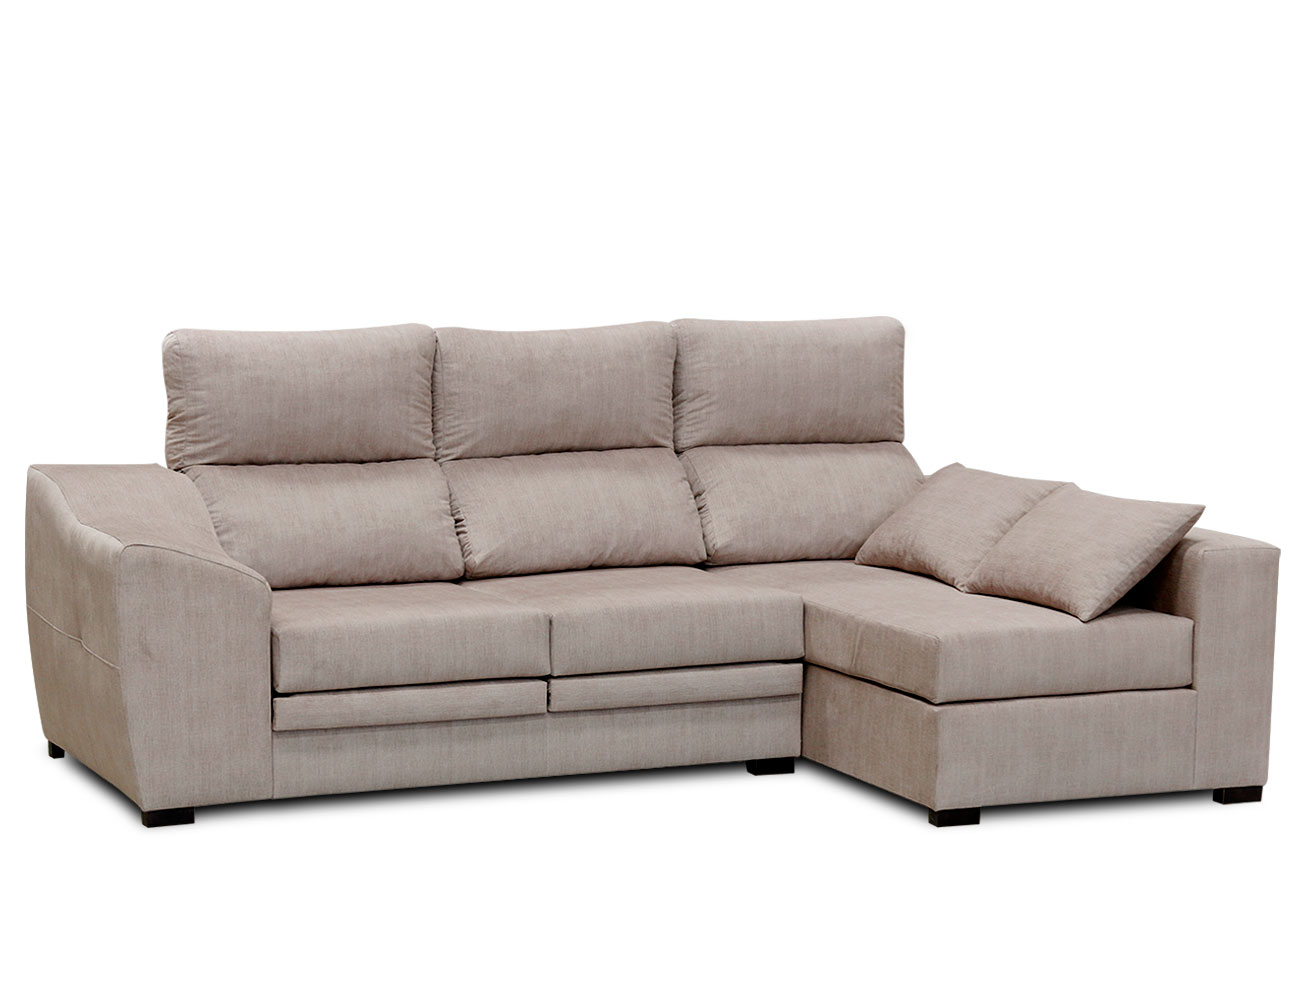 Sofa chaiselongue moderno cojin beig 1